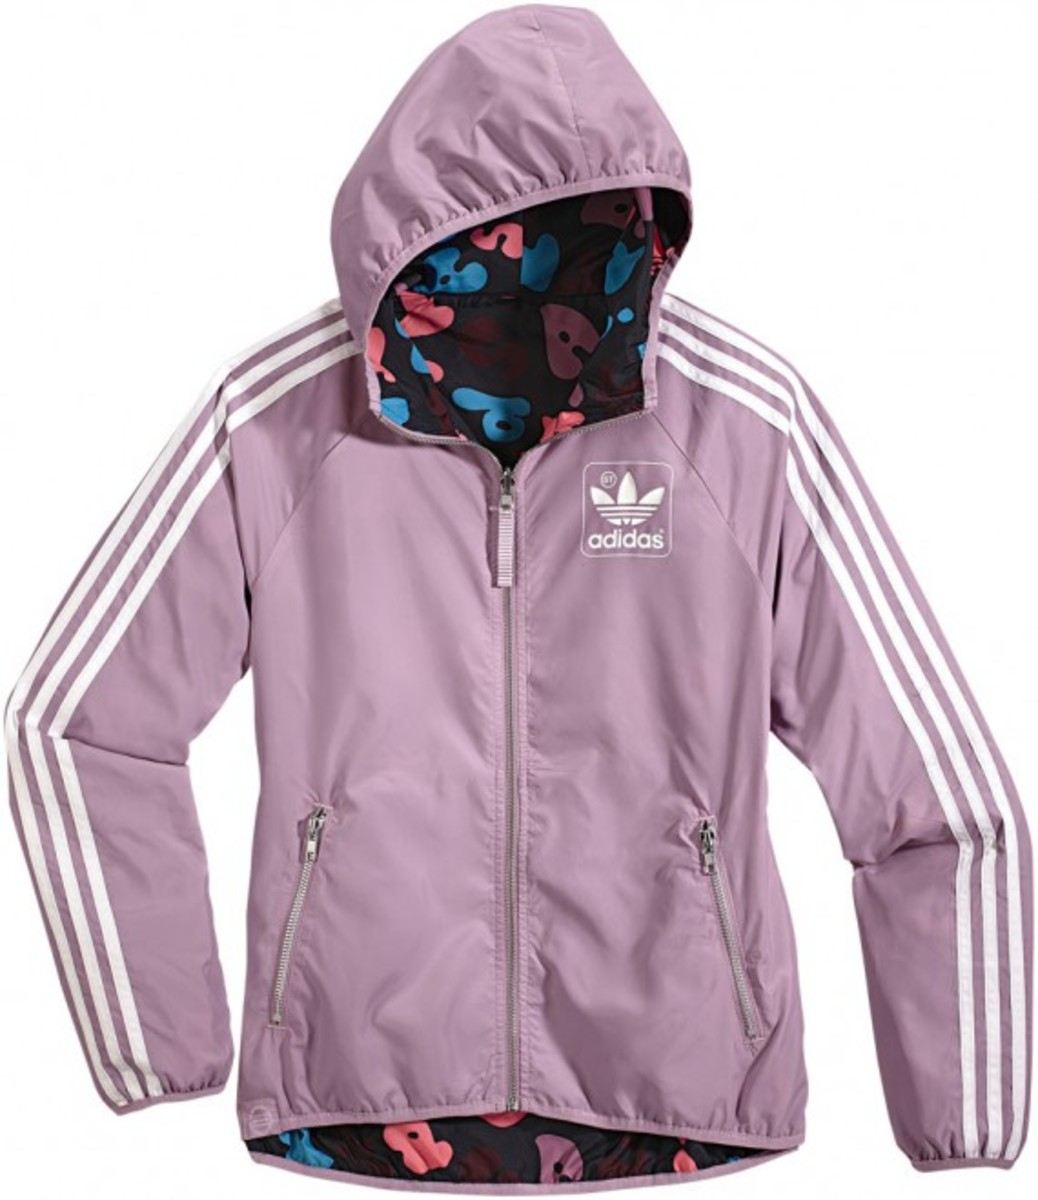 adidas-originals-st-collection-womens-fall-winter-2011-07